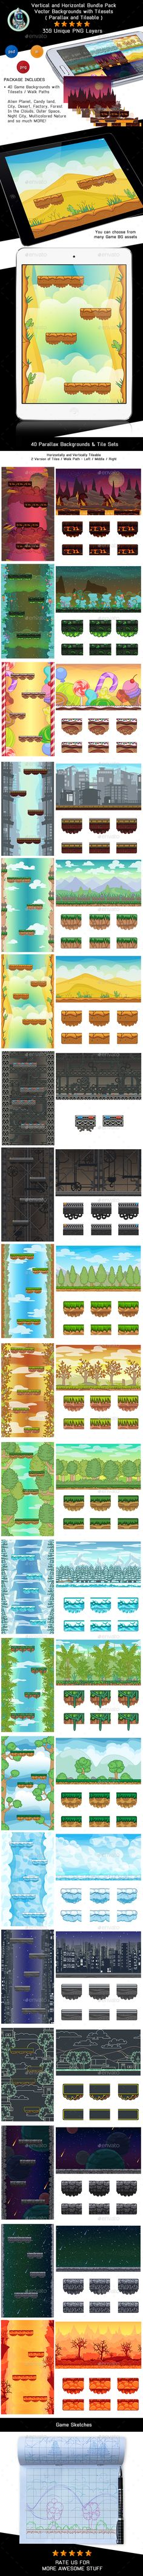 40 Vector Game Backgrounds with Tilesets - Horizontal and Vertical (Backgrounds)